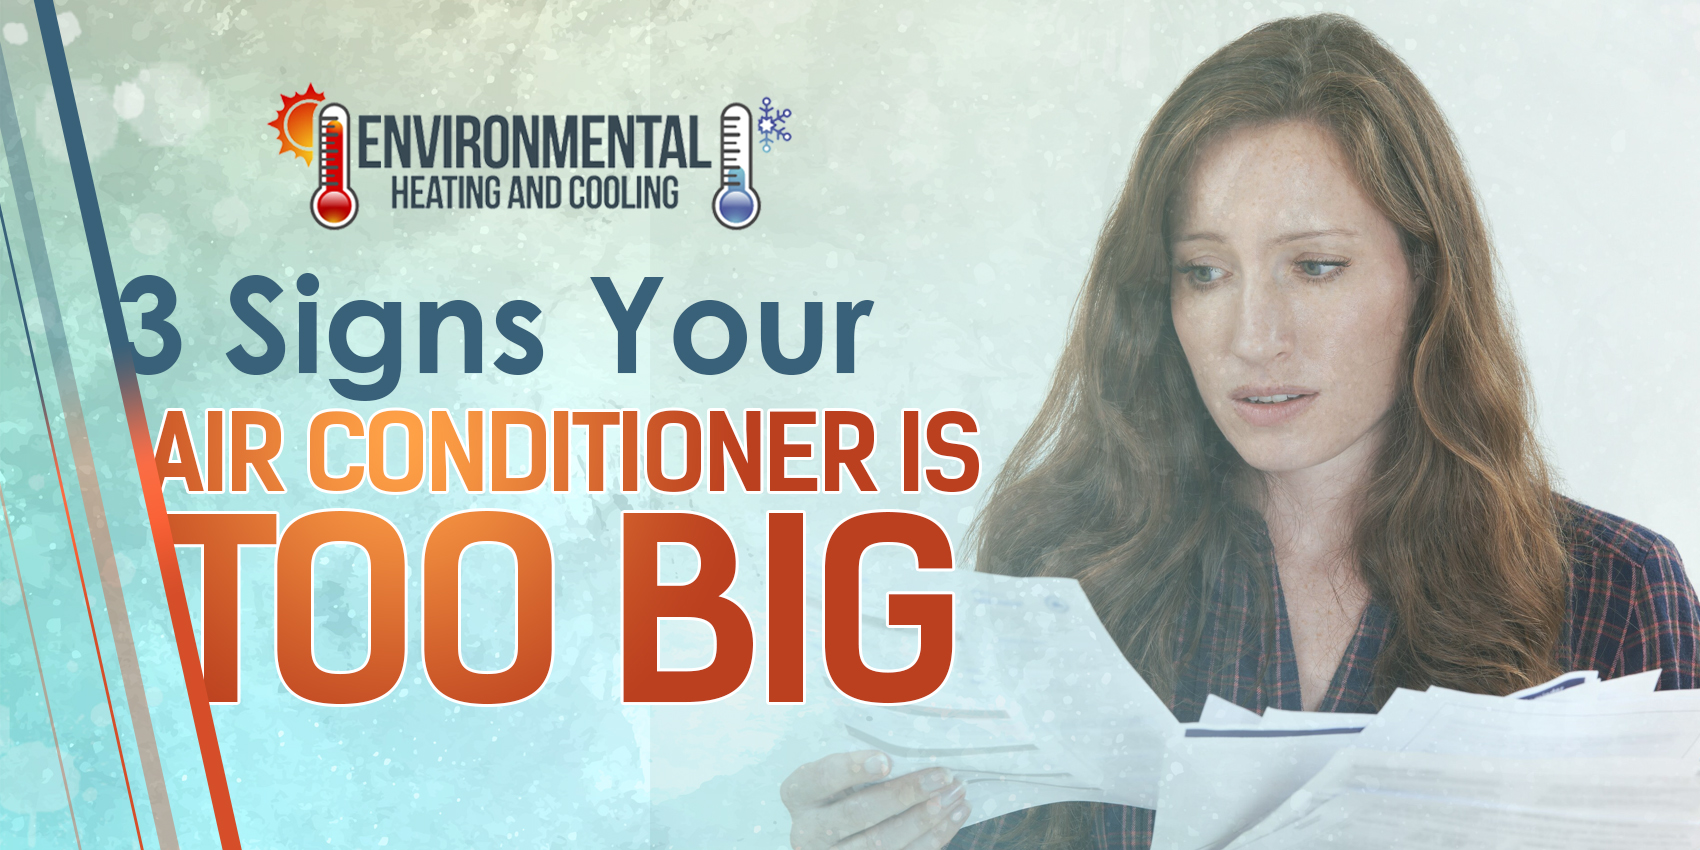 3 Signs Your Air Conditioner is Too Big